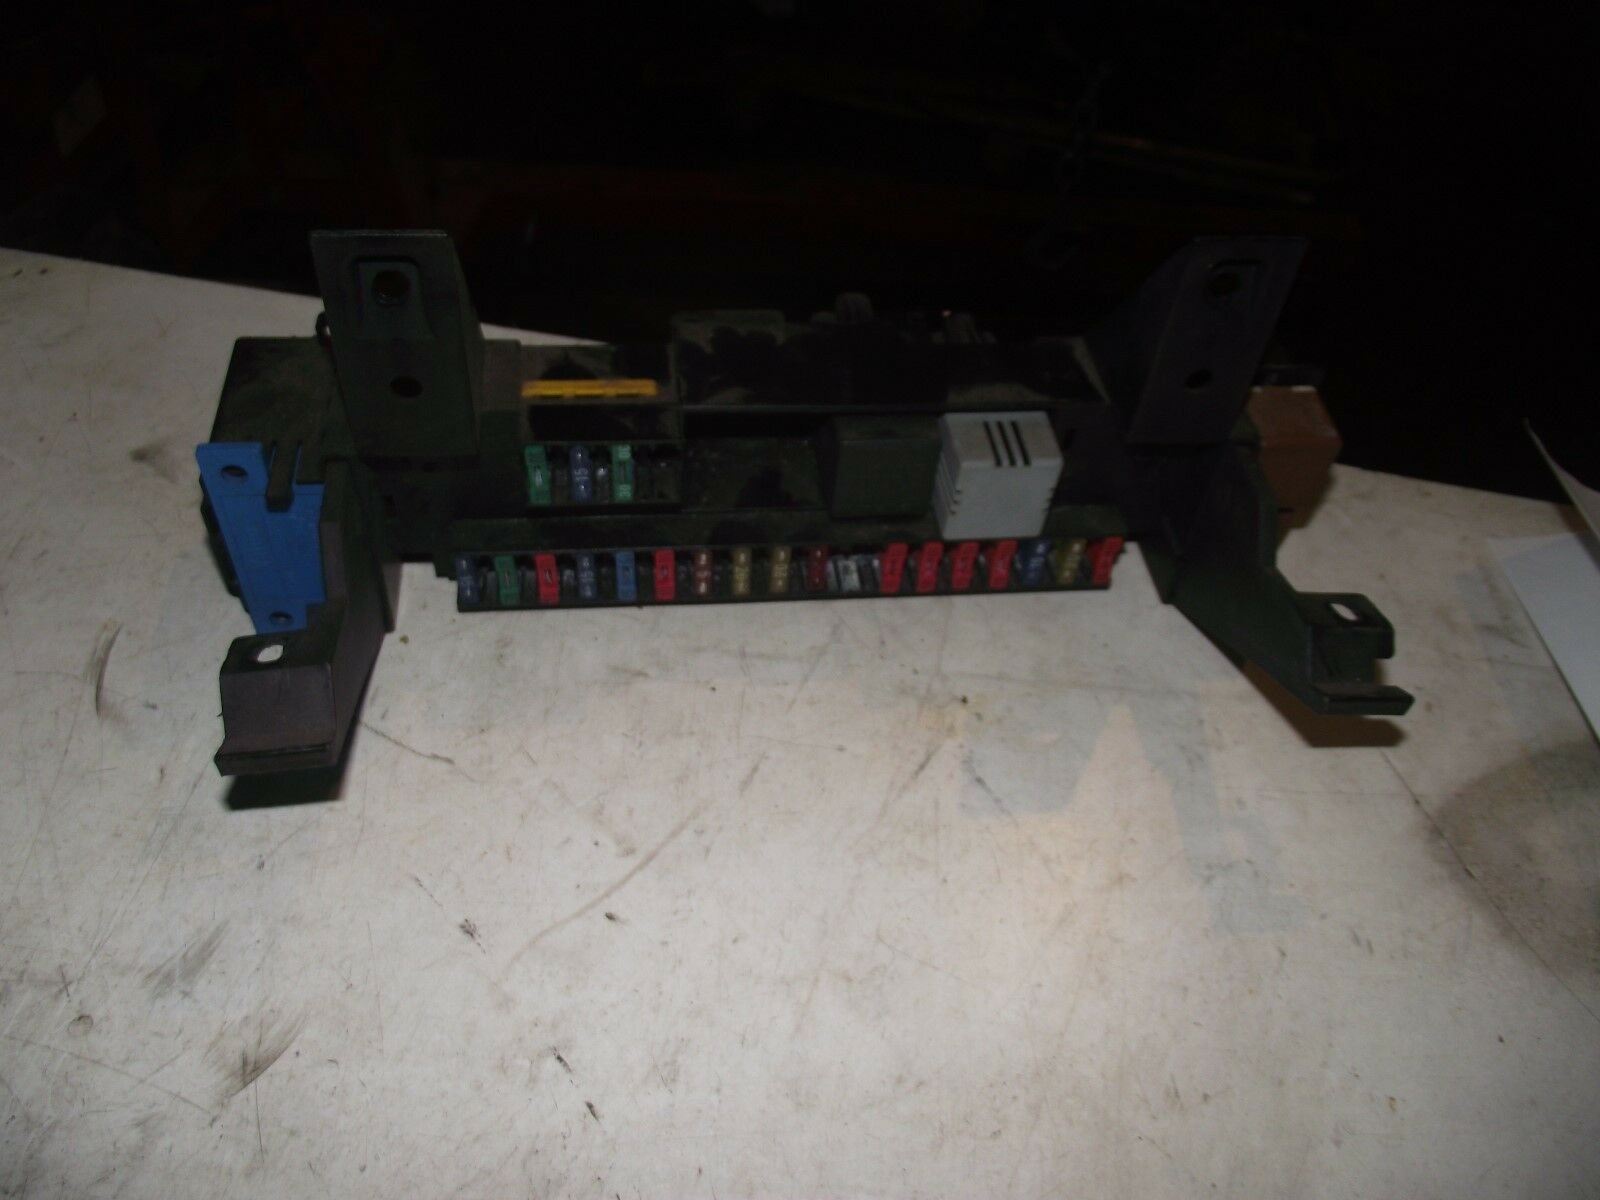 Renault Clio 14 P Reg 1996 Fuse Box 1800 Picclick Uk Heater 1 Of 1only Available